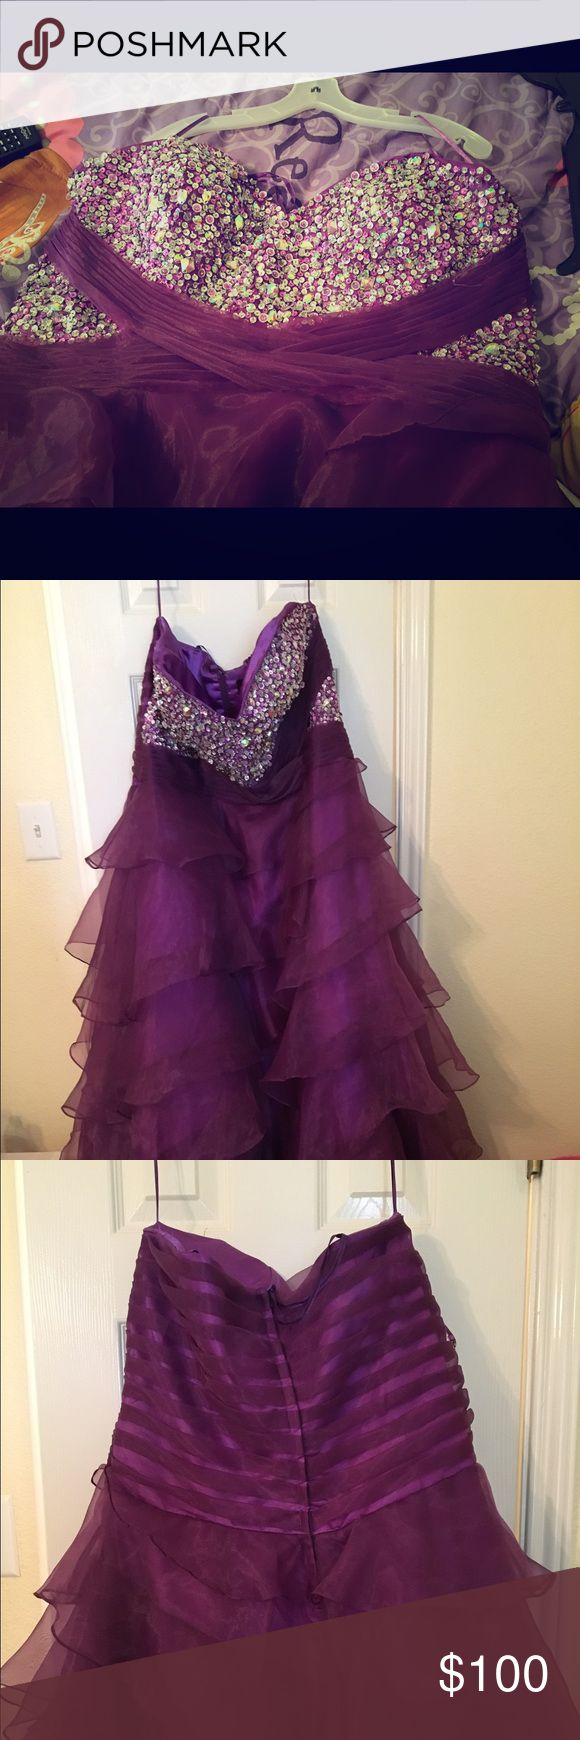 Purple prom dress only worn once Purple prom dress with sequin bust Dresses Prom